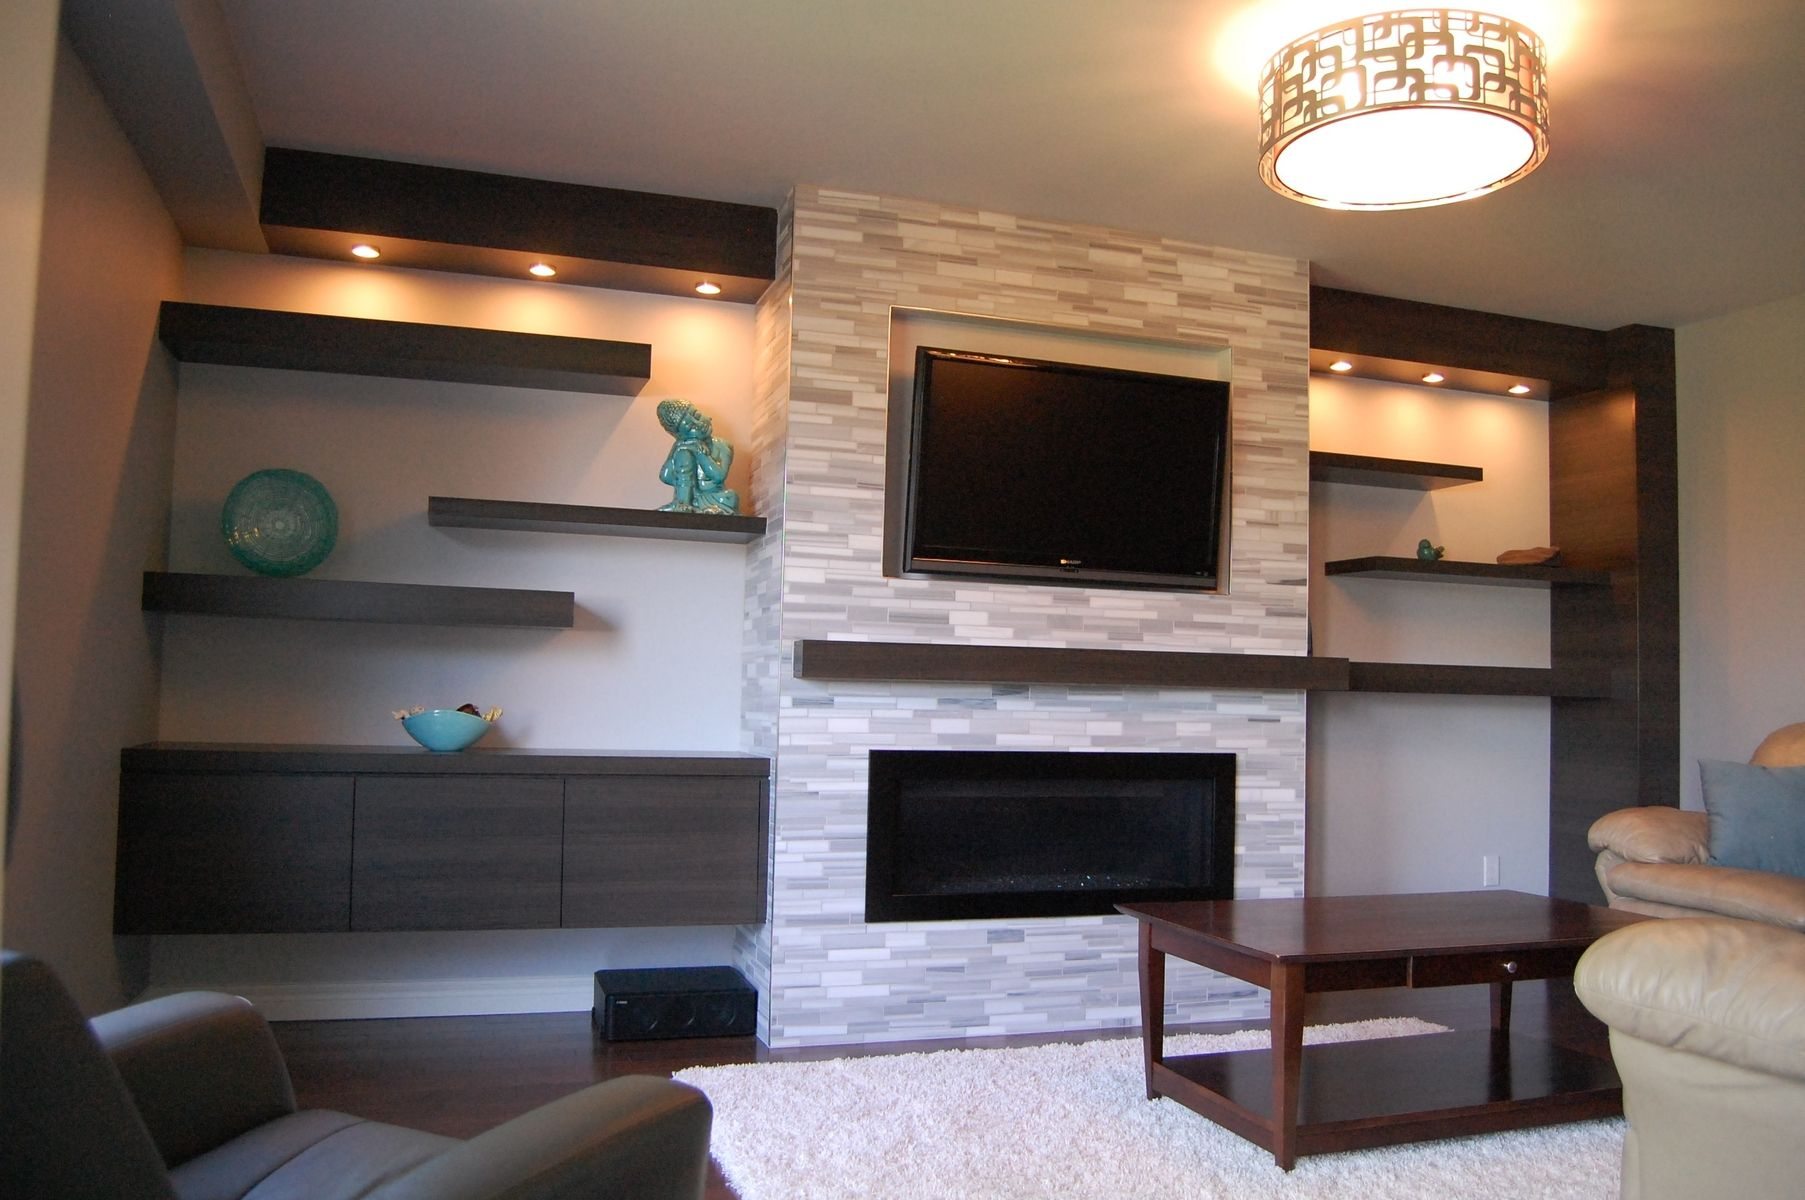 Television Over Fireplace Design Modern Living Room Wall Units With Fireplace And Tv Also Drum